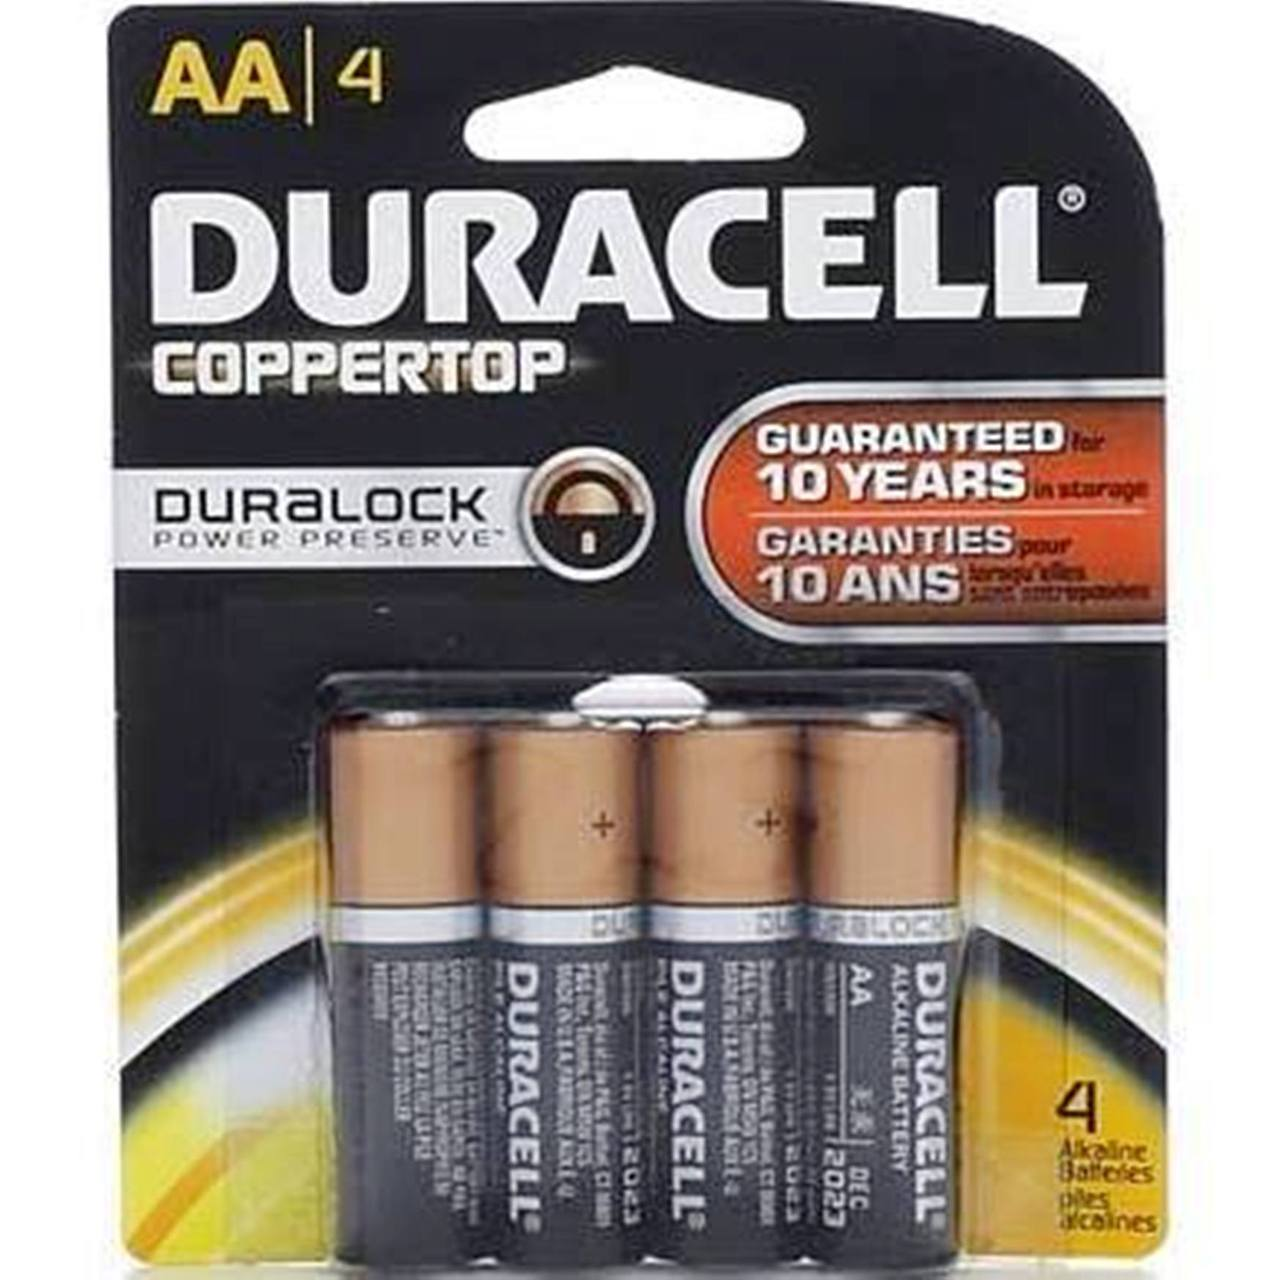 Duracell Coppertop Duralock AA - Original Retail 4 Pack Carded + FREE SHIPPING!